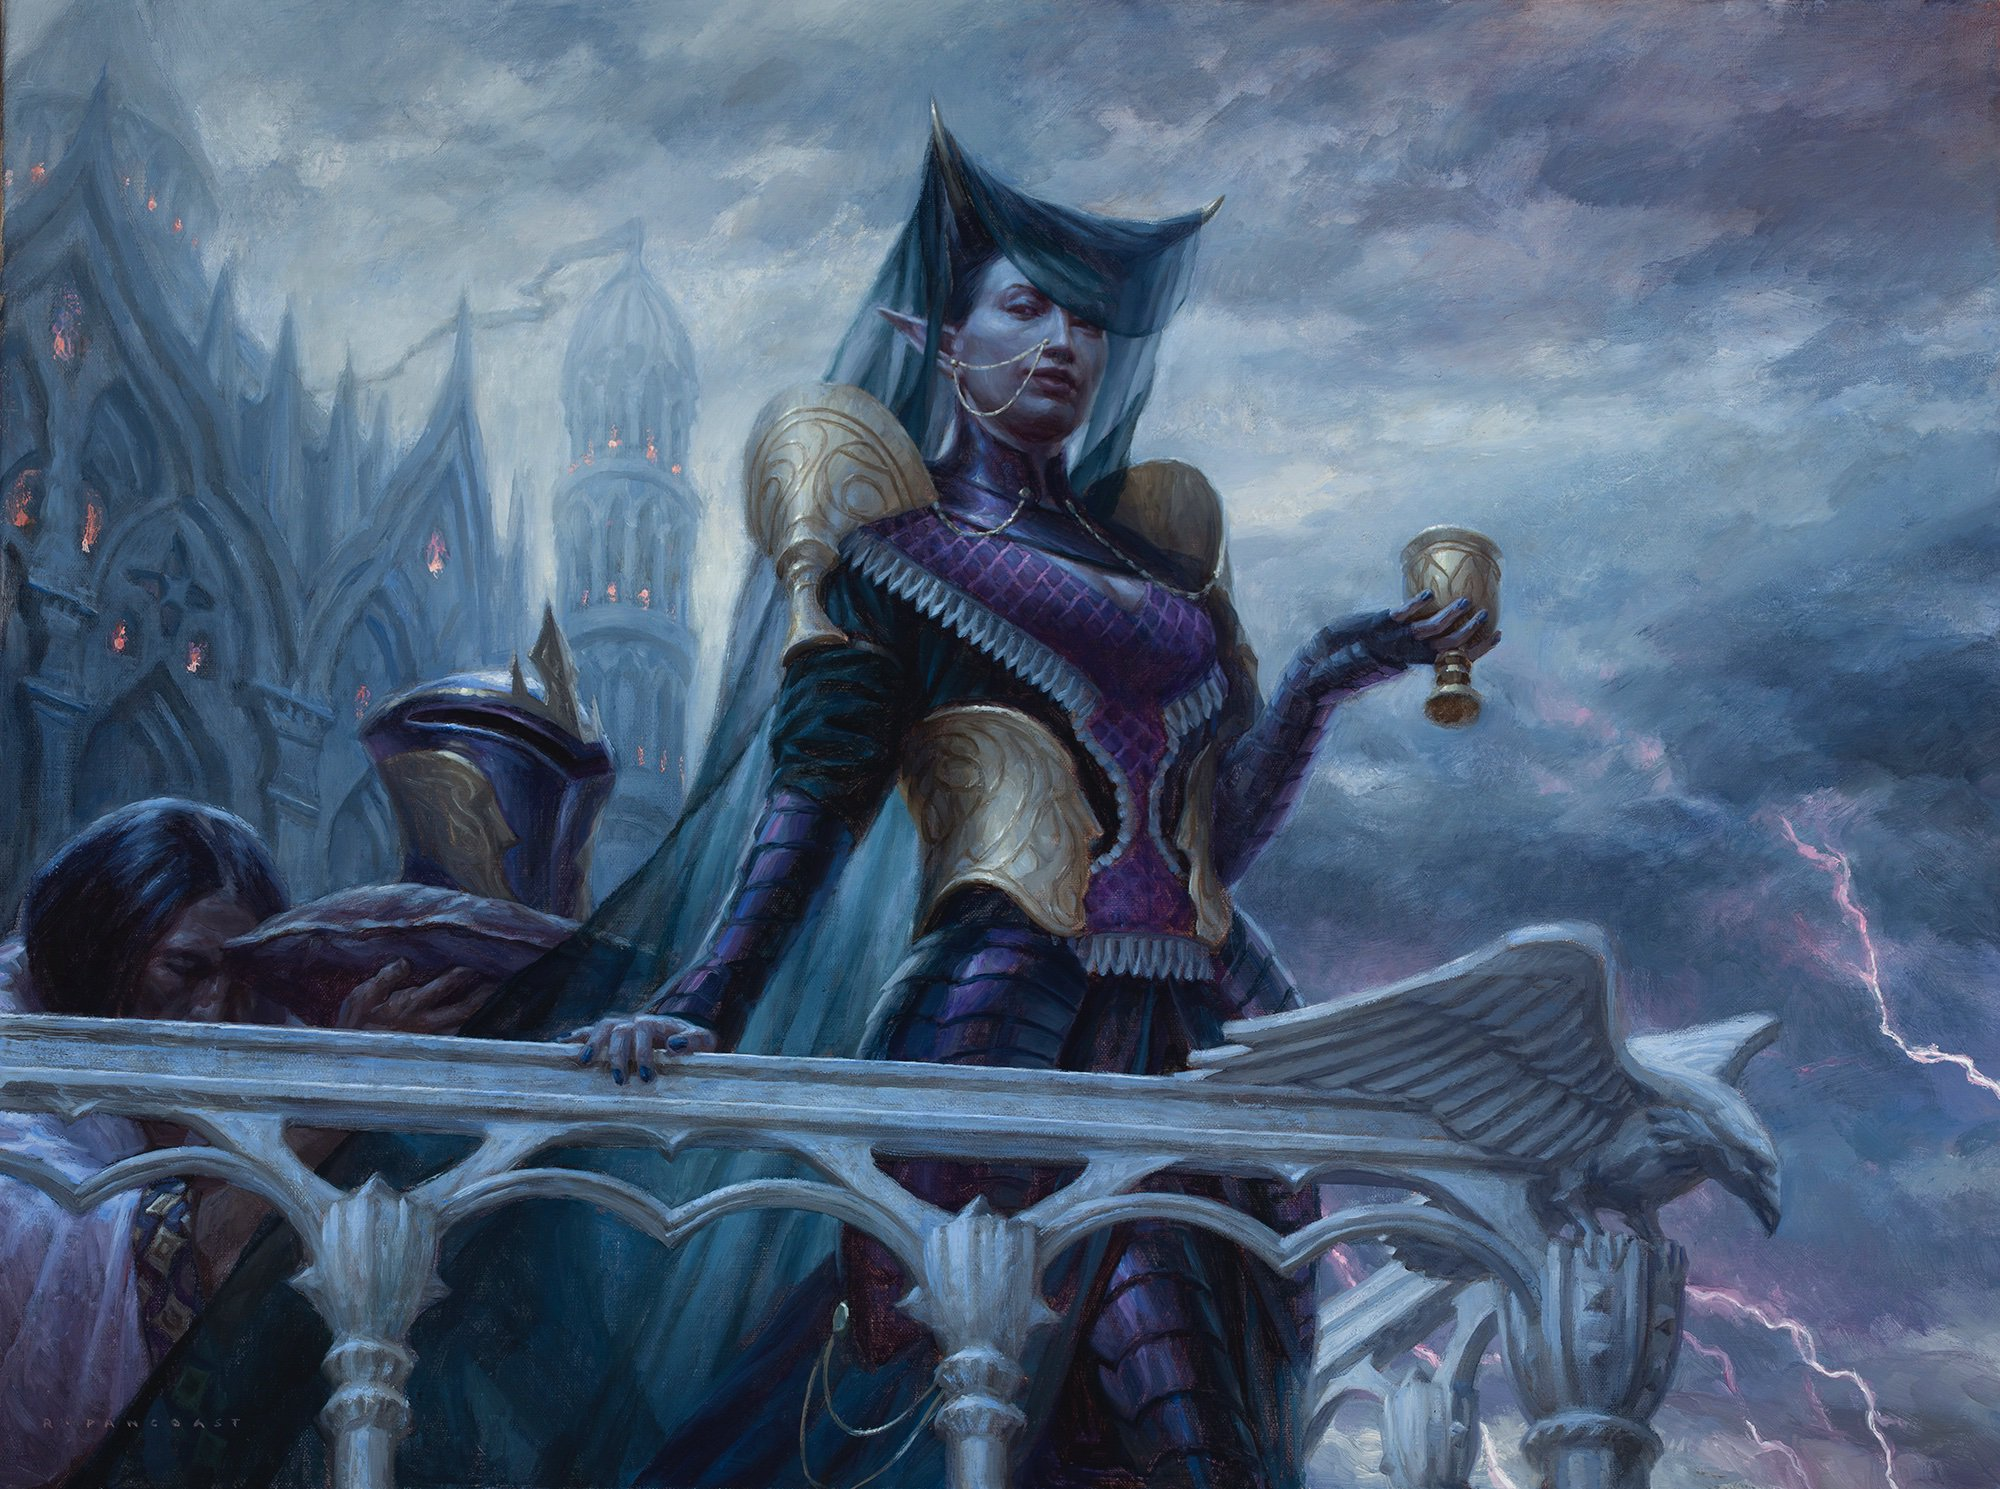 Throne of Eldraine – analiza dodatku pod kątem limited: Czarny